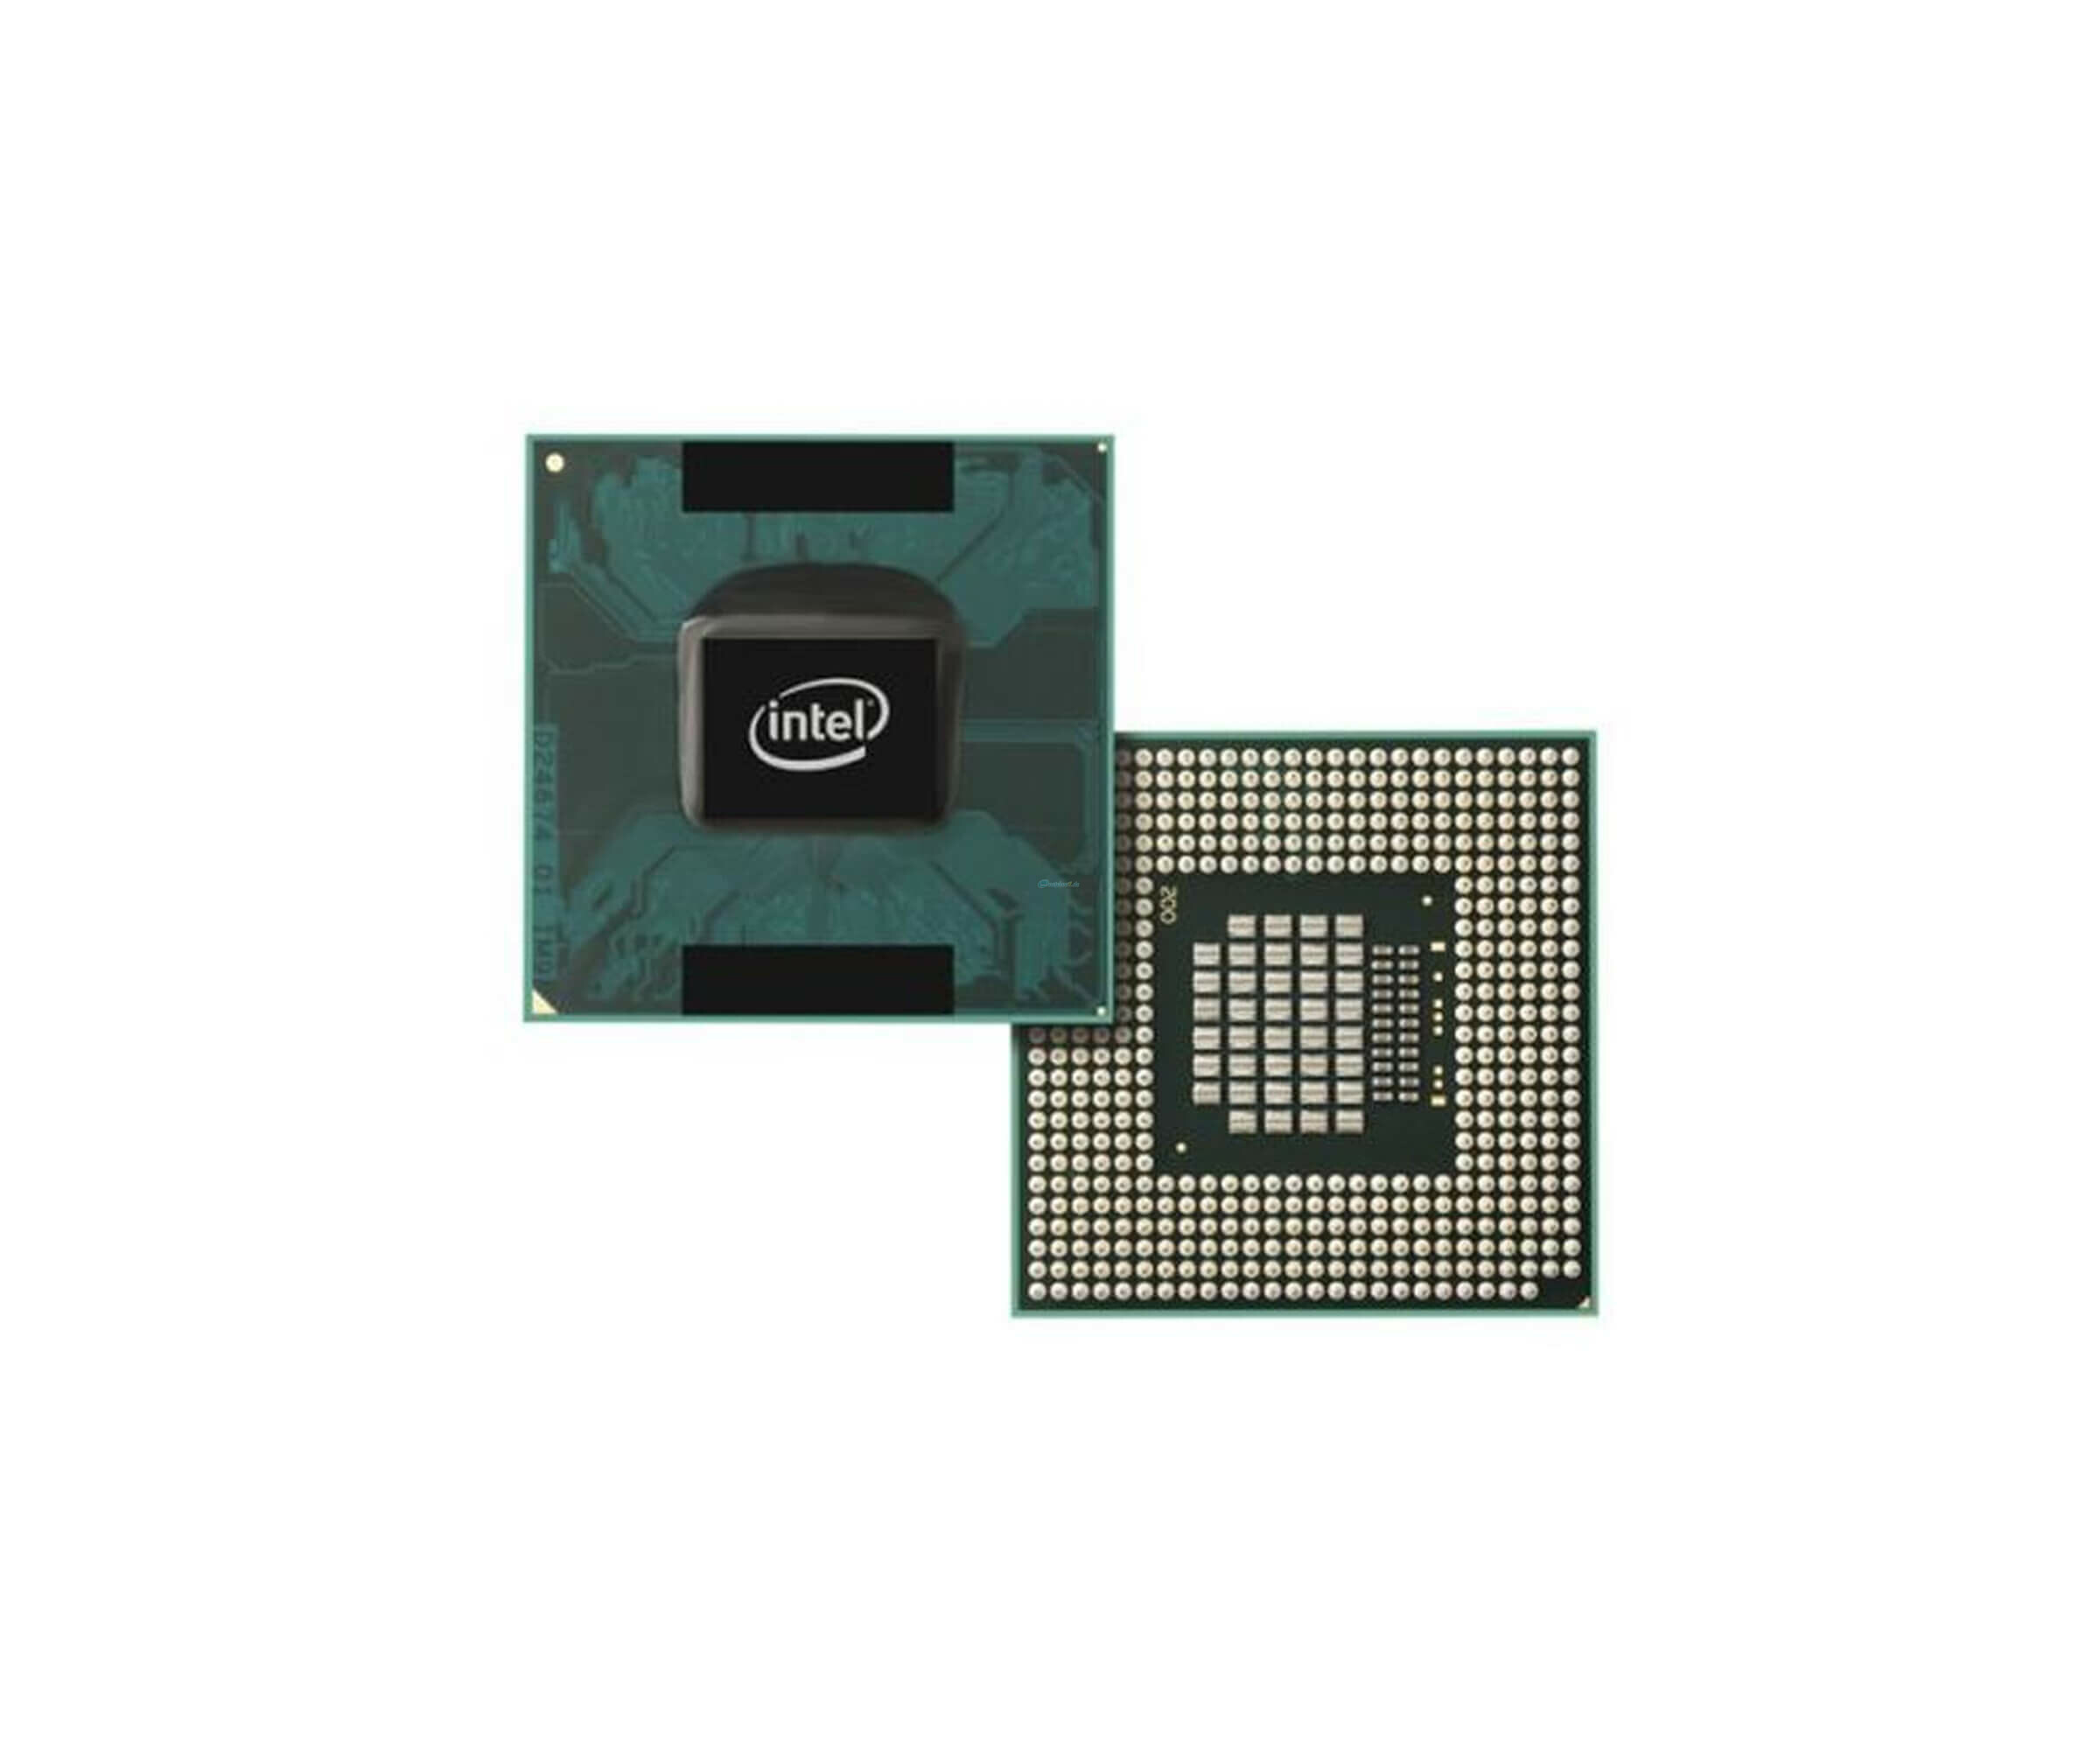 Intel Core 2 Duo T4500 - 2,3 GHz (800MHz FSB) -  PGA478 - L2 1 MB